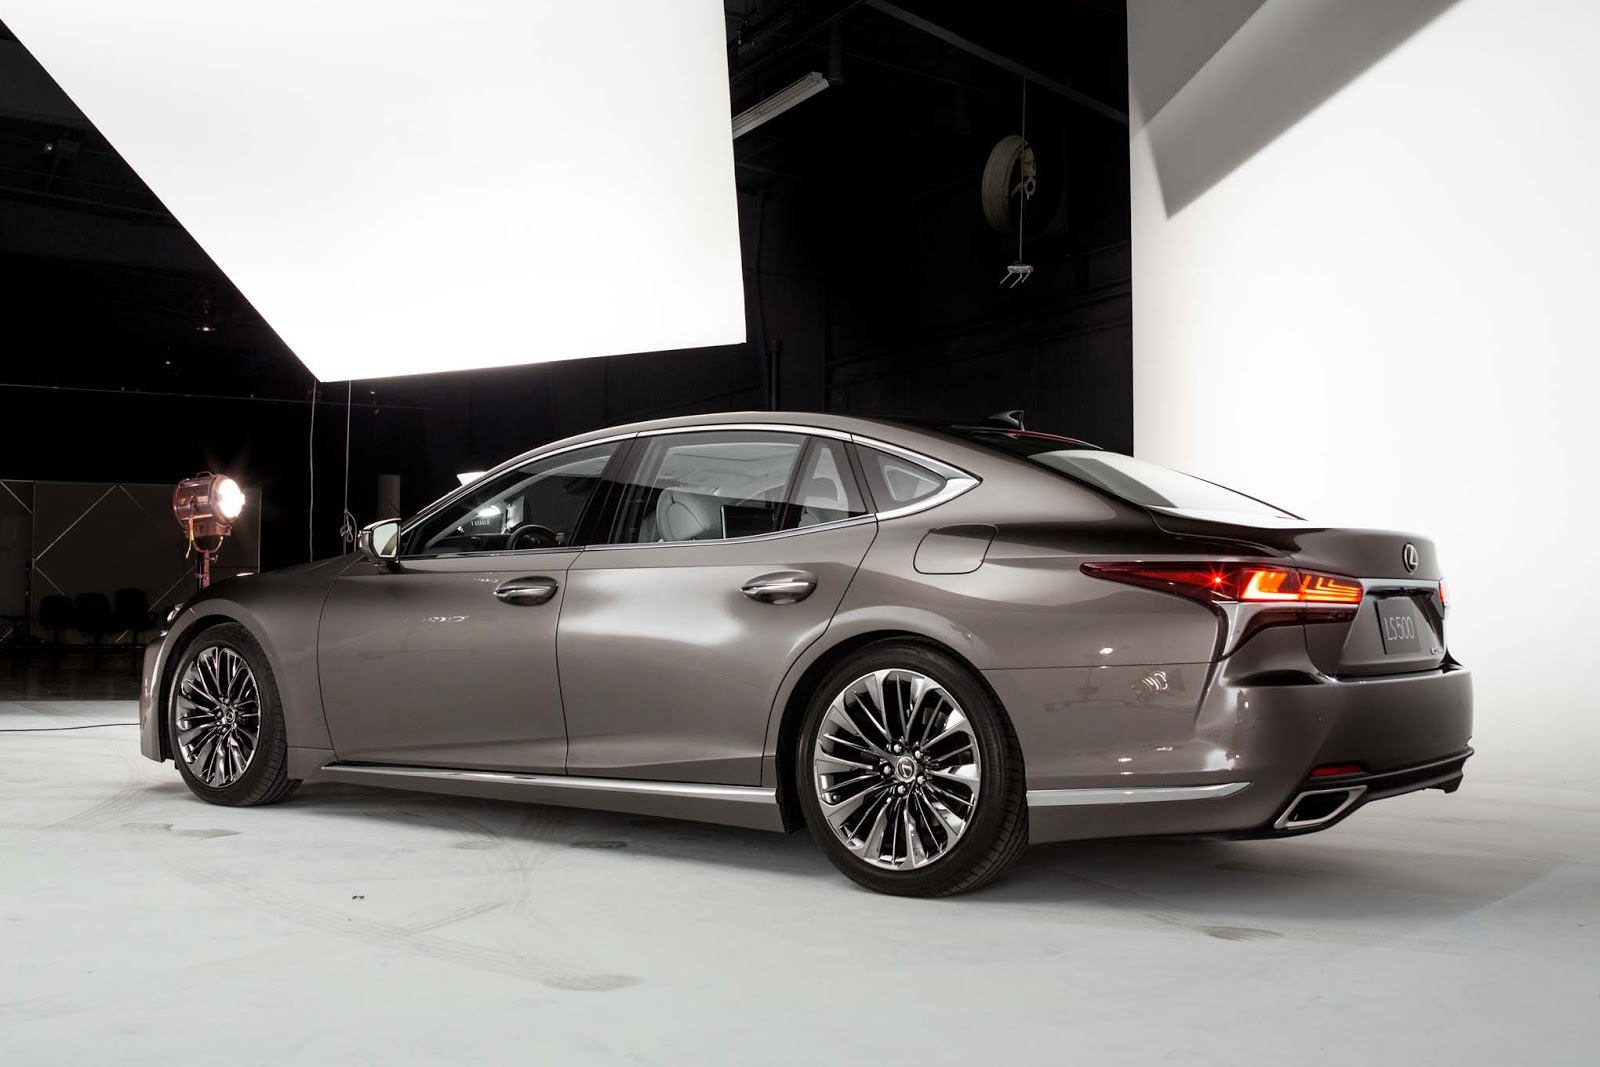 2018 Lexus IS 250F Redesign Exterior Interior Rumor